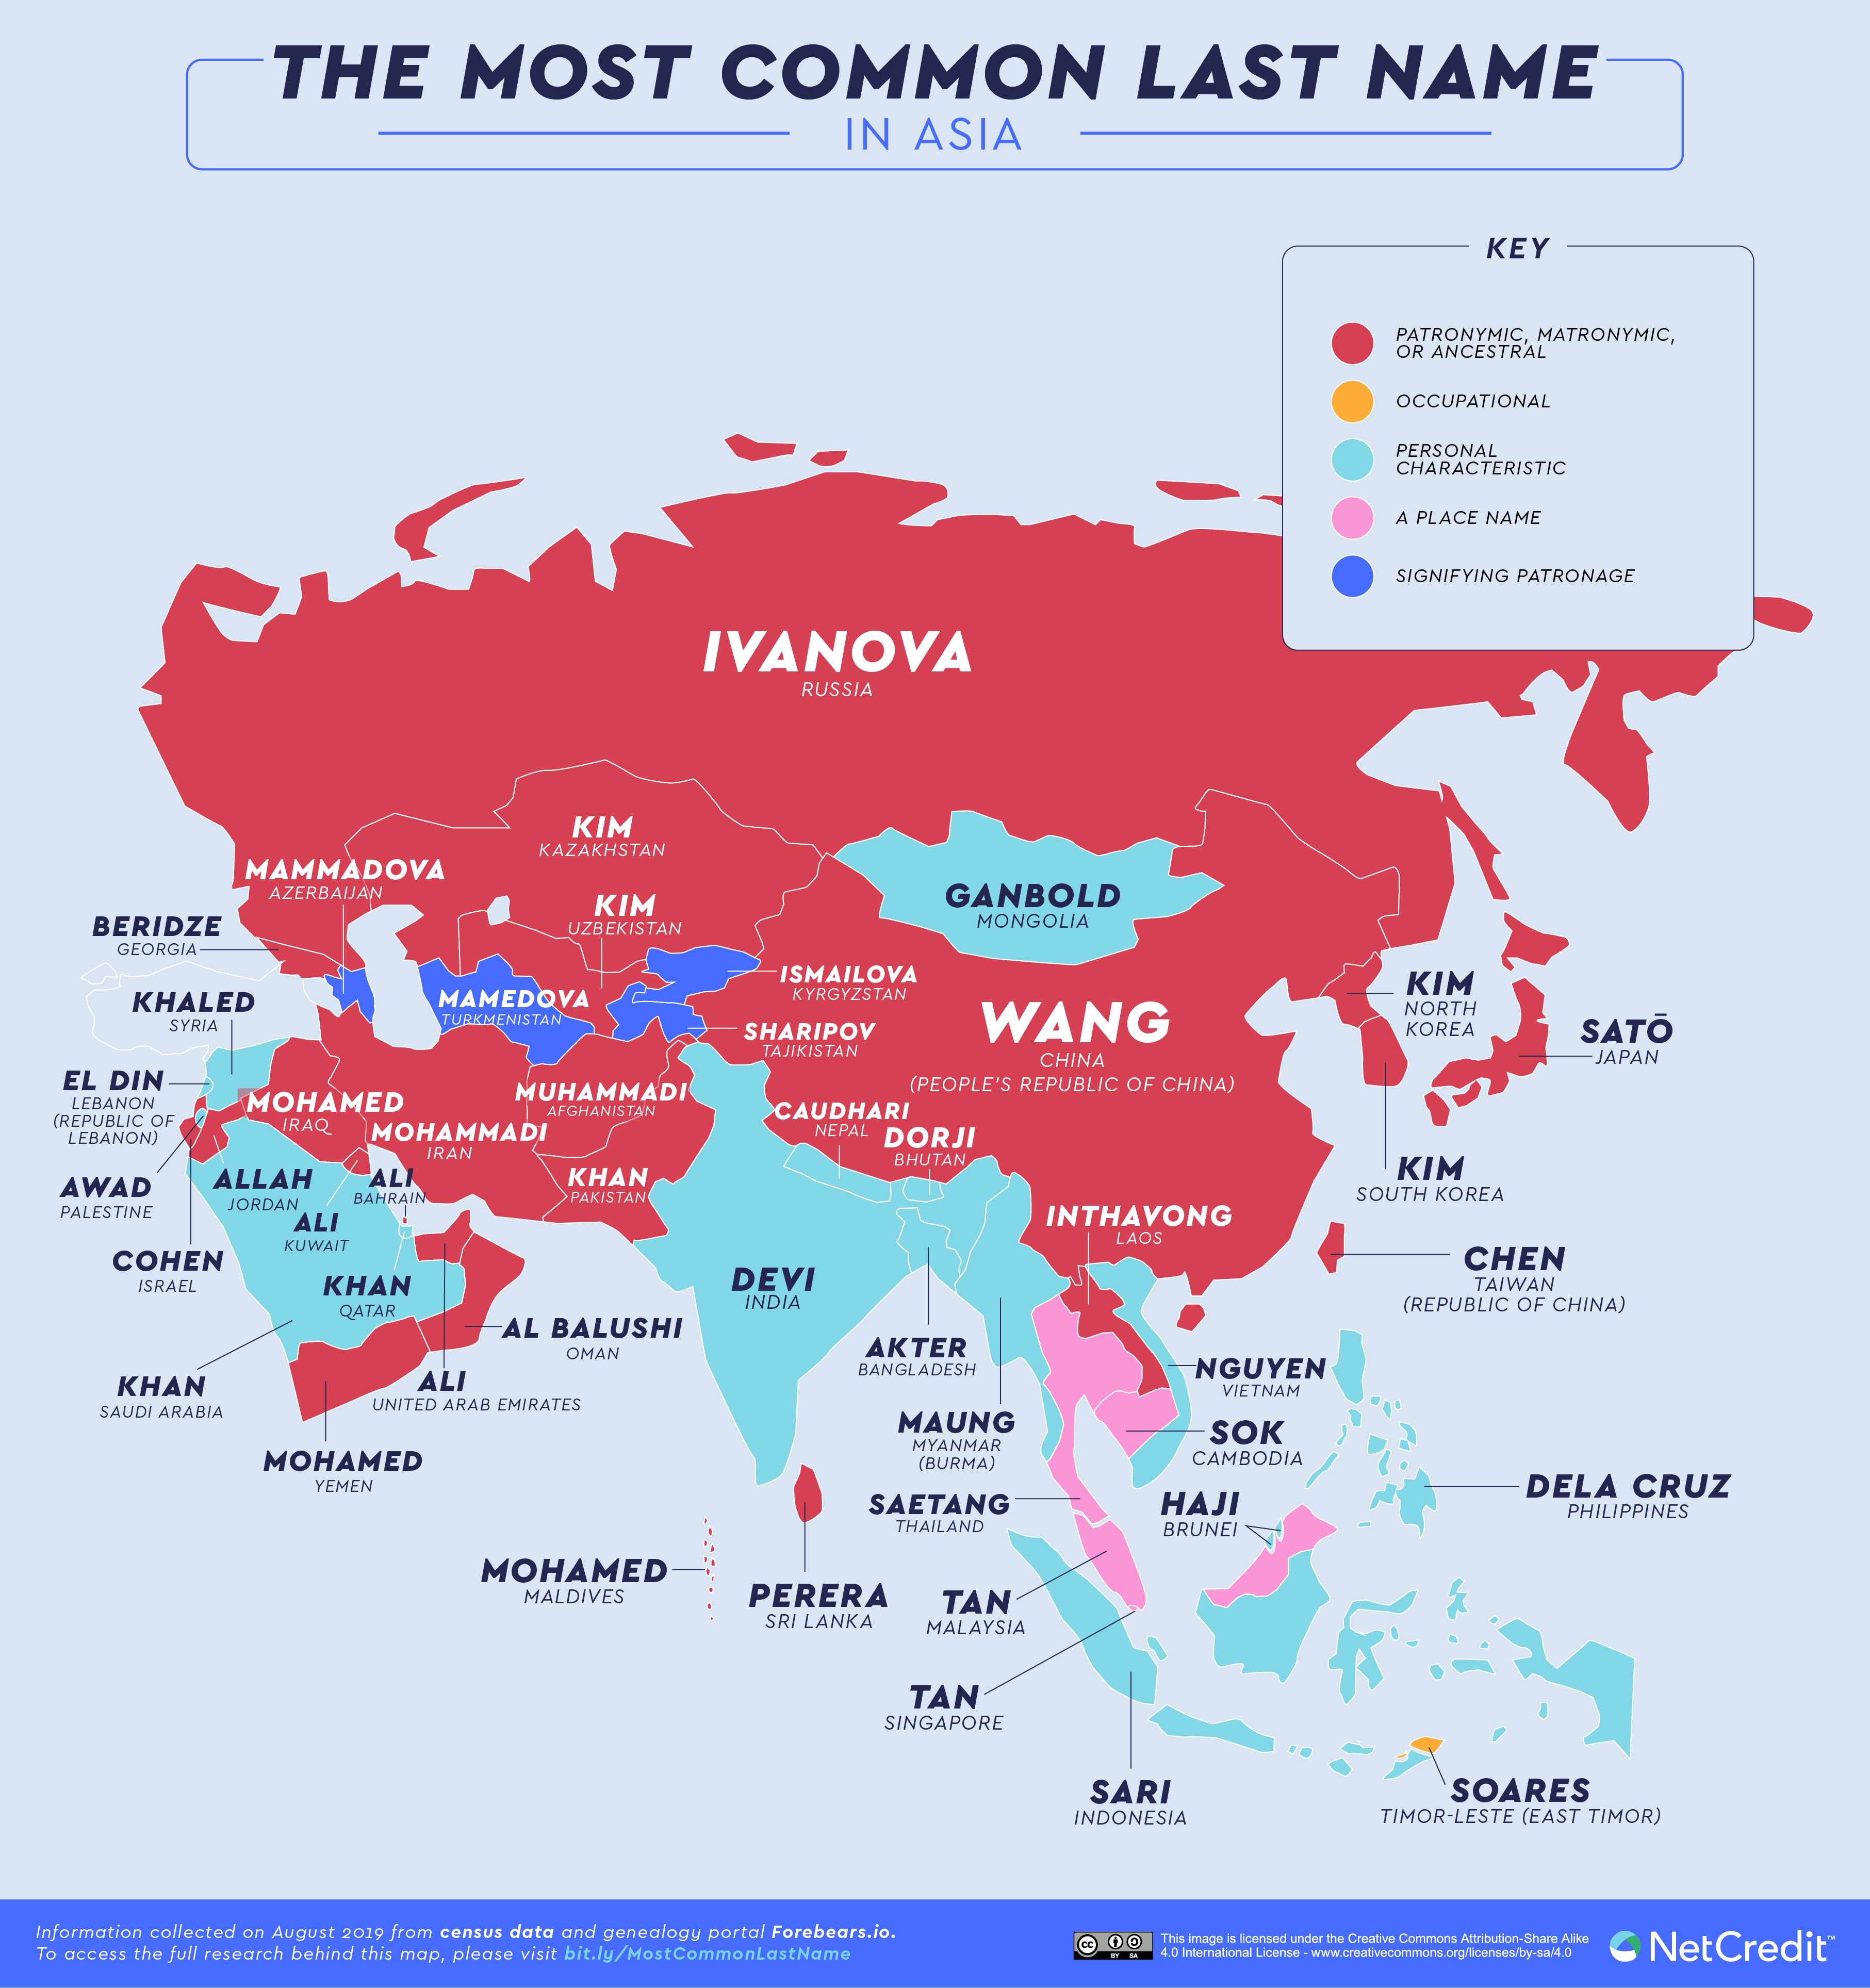 The Most Common Last Names in Asia